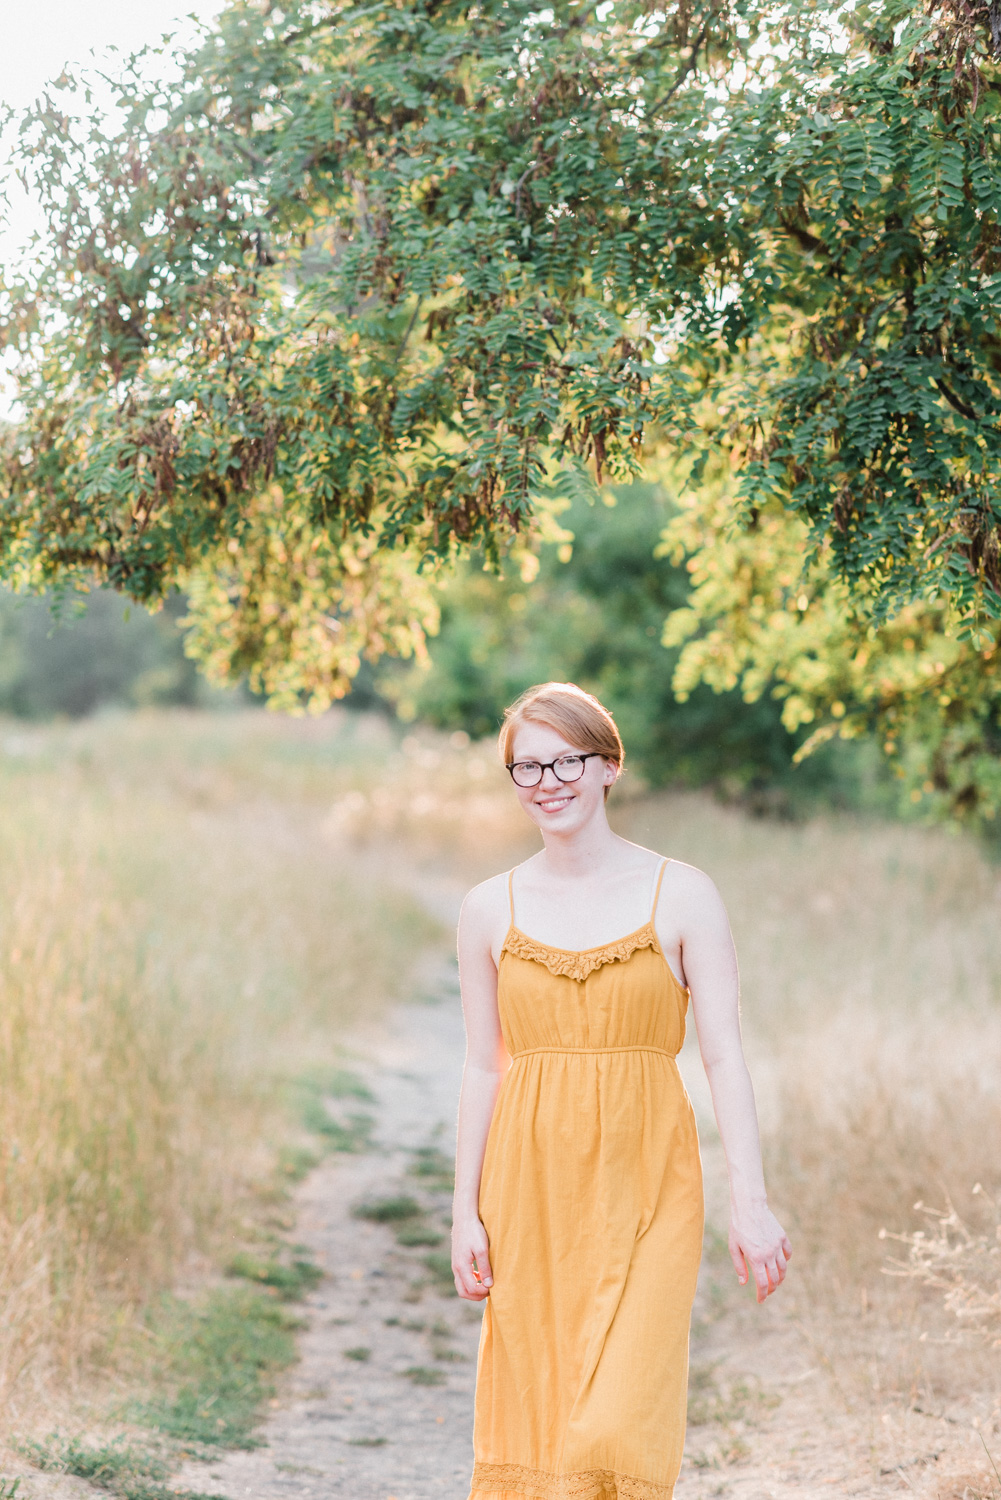 mt_spokane_senior_session_hannah_dightman-23.jpg